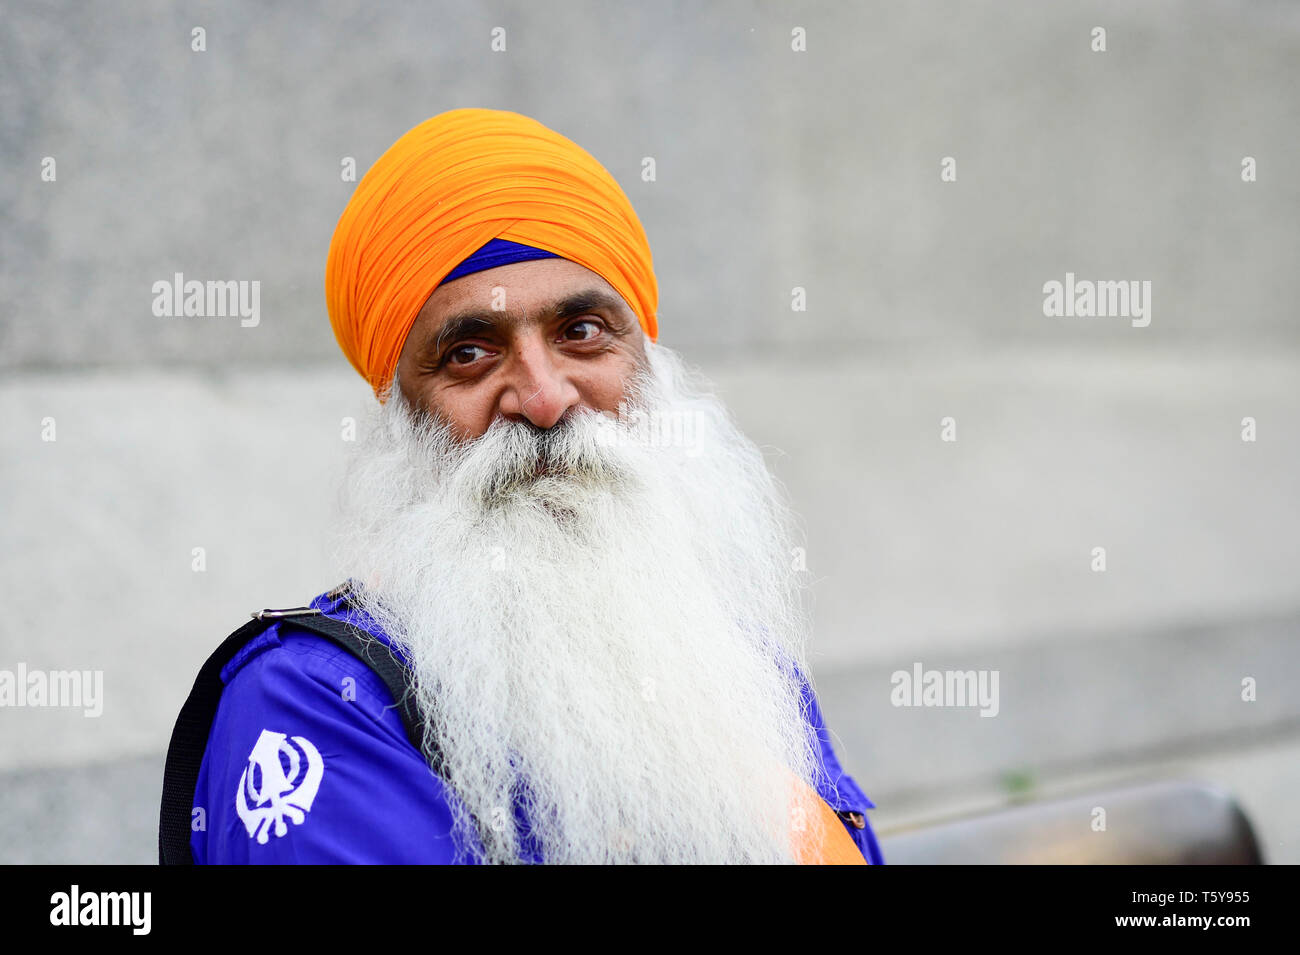 London, UK.  27 April 2019.  A visitor to the festival of Vaisakhi in Trafalgar Square, hosted by the Mayor of London.  For Sikhs and Punjabis, the festival celebrates the spring harvest and commemorates the founding of the Khalsa community over 300 years ago.  Credit: Stephen Chung / Alamy Live News - Stock Image